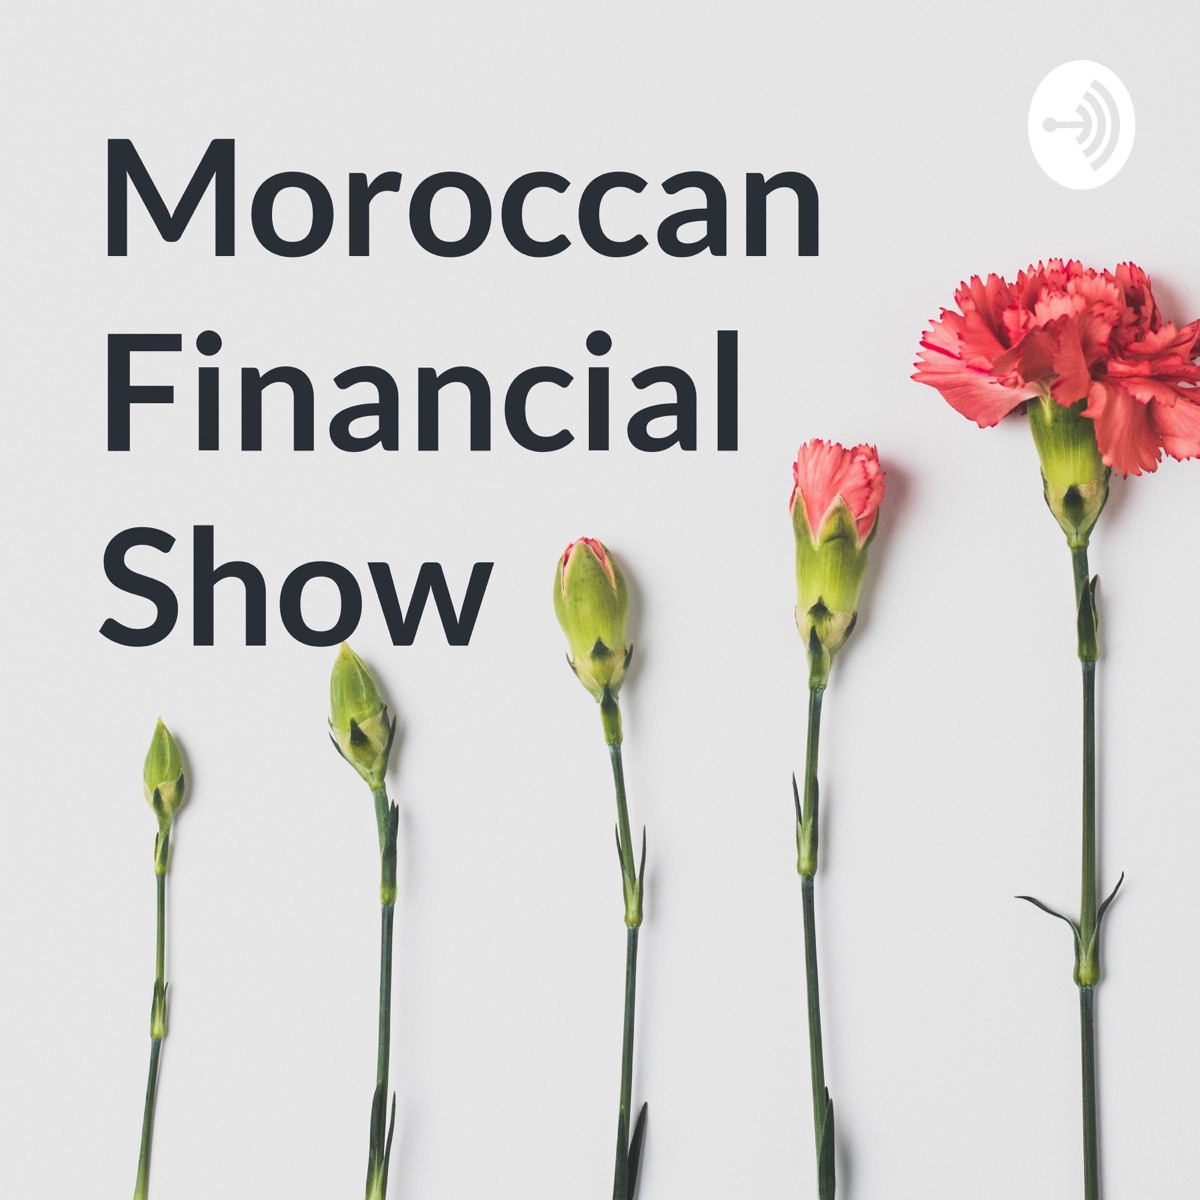 Moroccan Financial Show